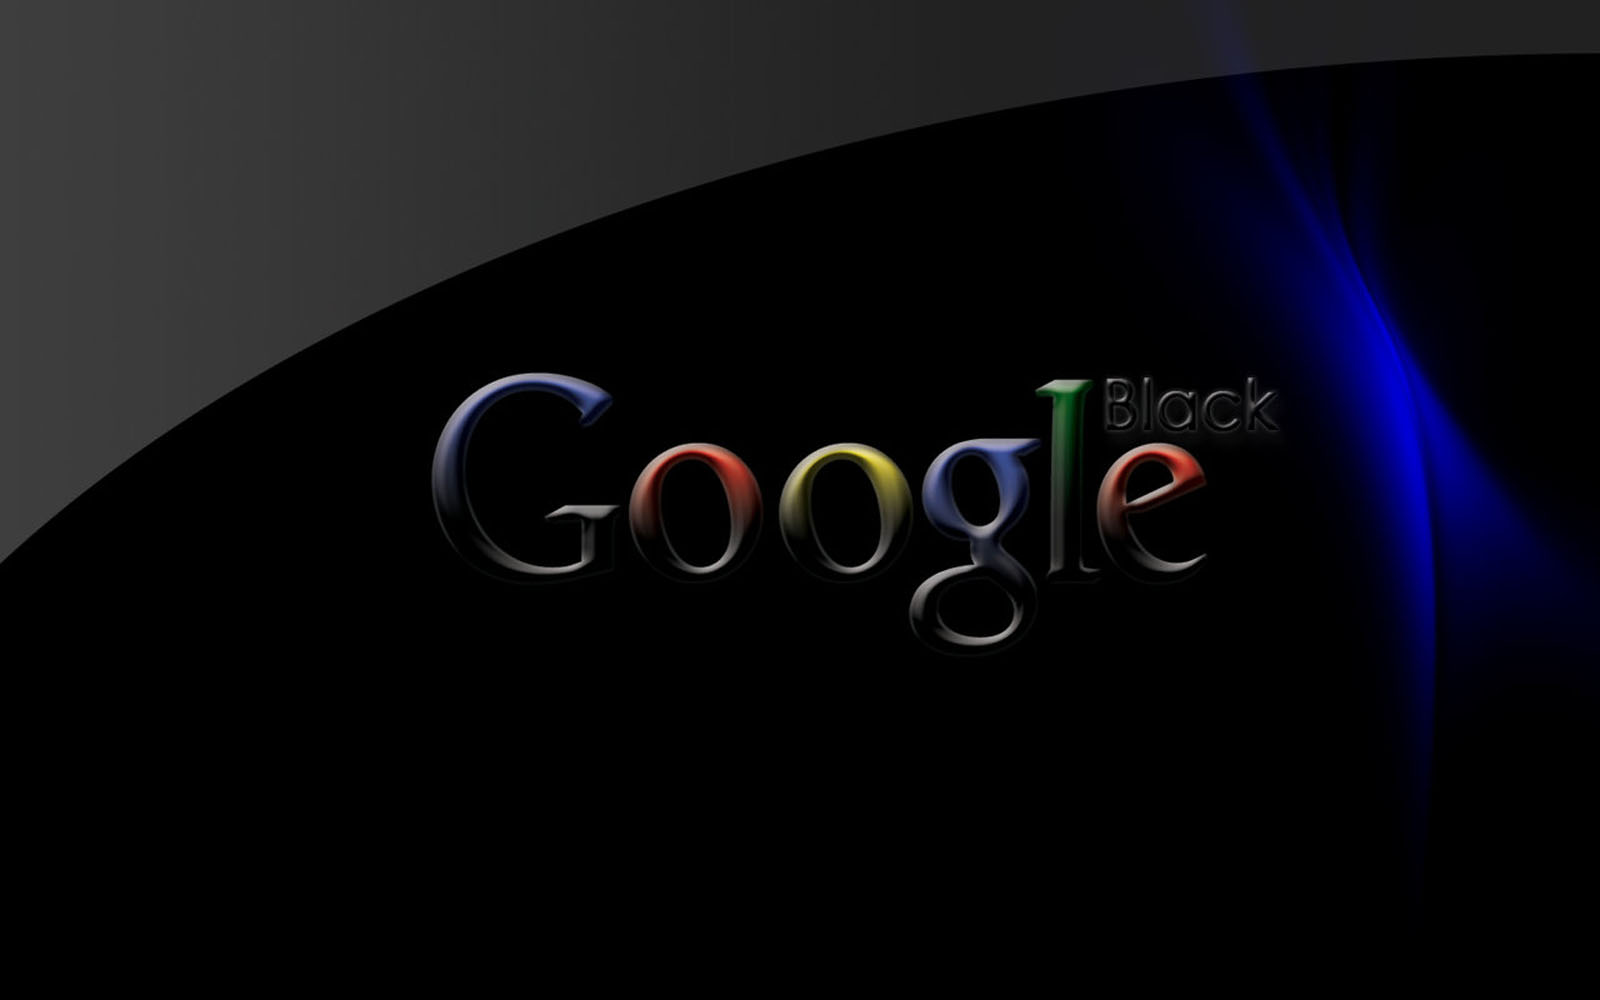 wallpapers Black Google Wallpapers 1600x1000